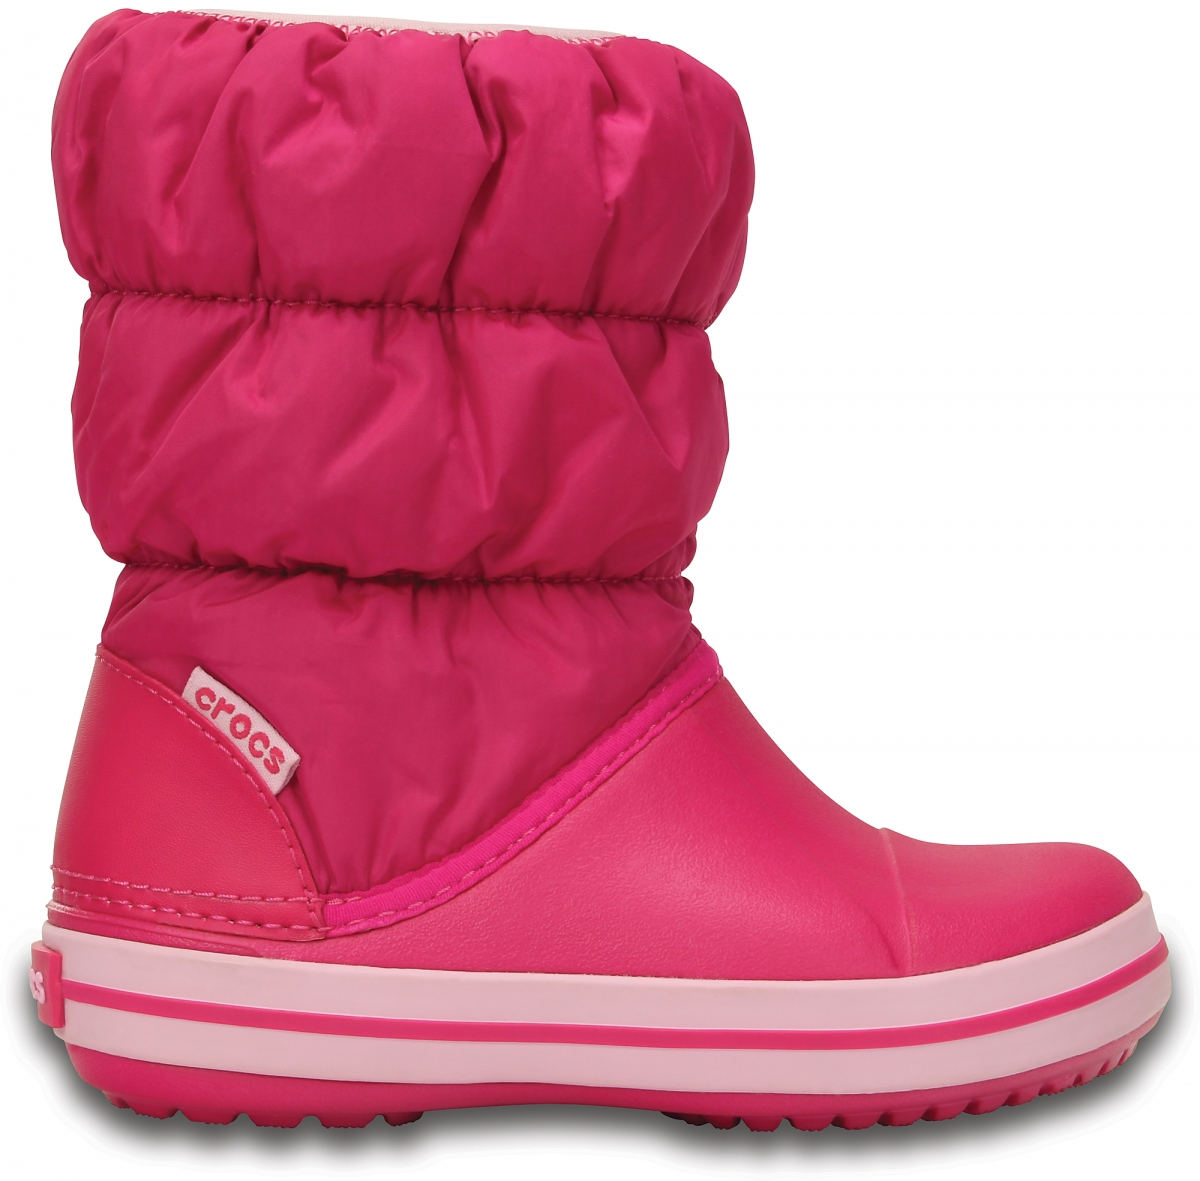 Crocs Winter Puff Boot Kids - Candy Pink, J2 (33-34)